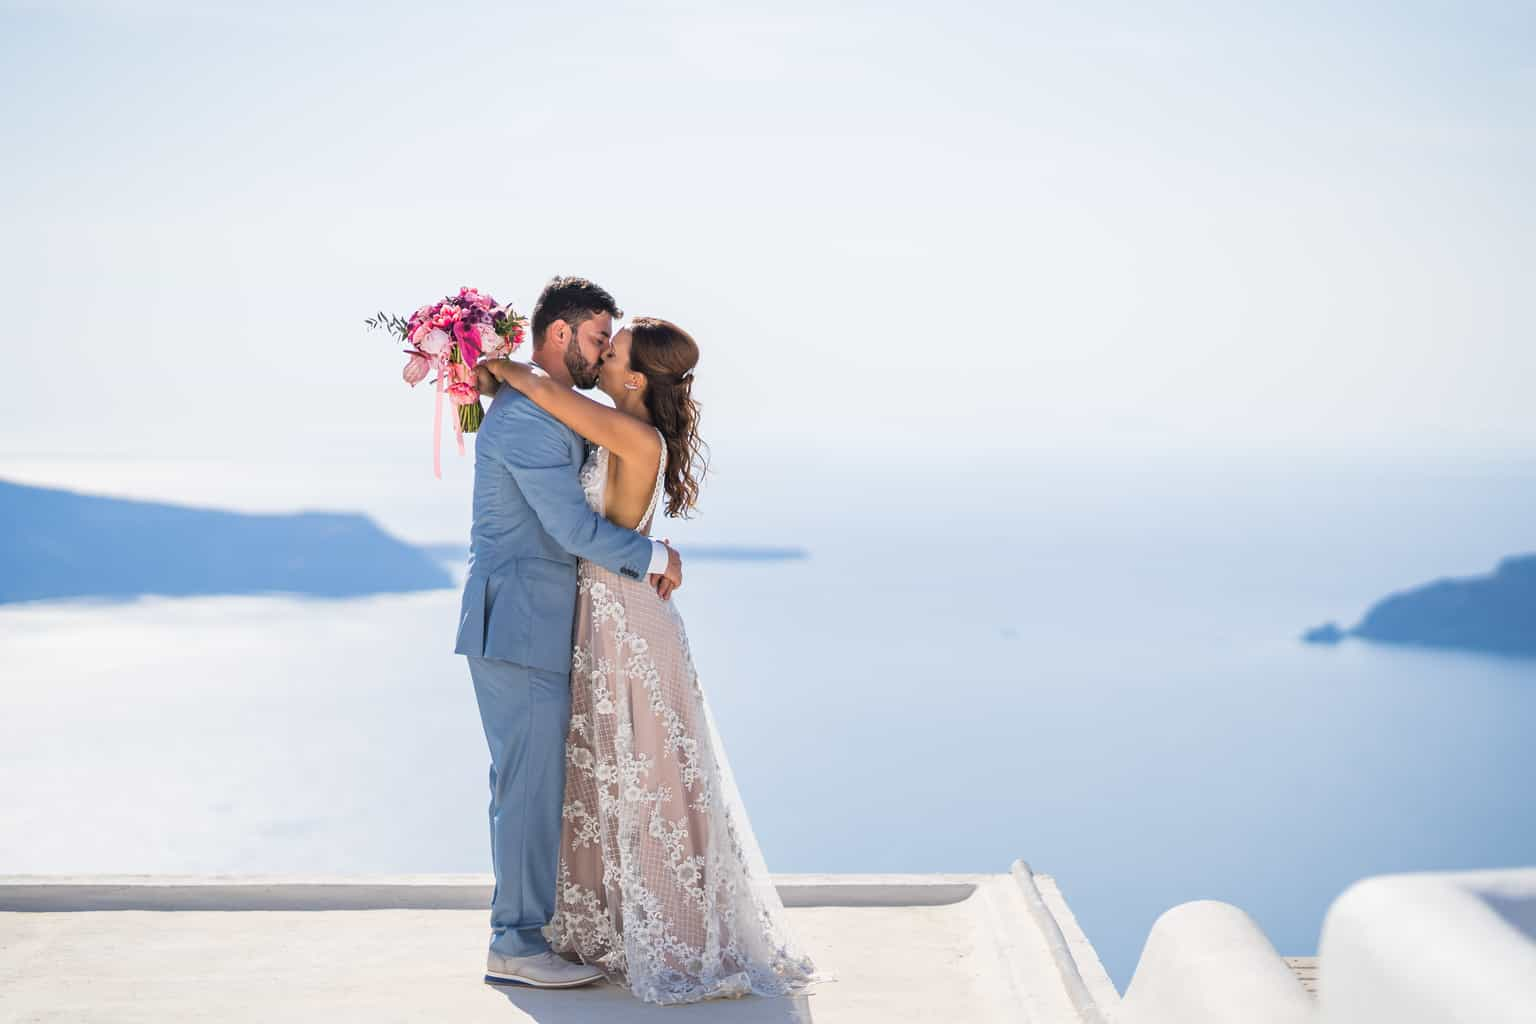 Destination-wedding-grecia-elopment-wedding-fotografia-life-click-studioLFC156of185